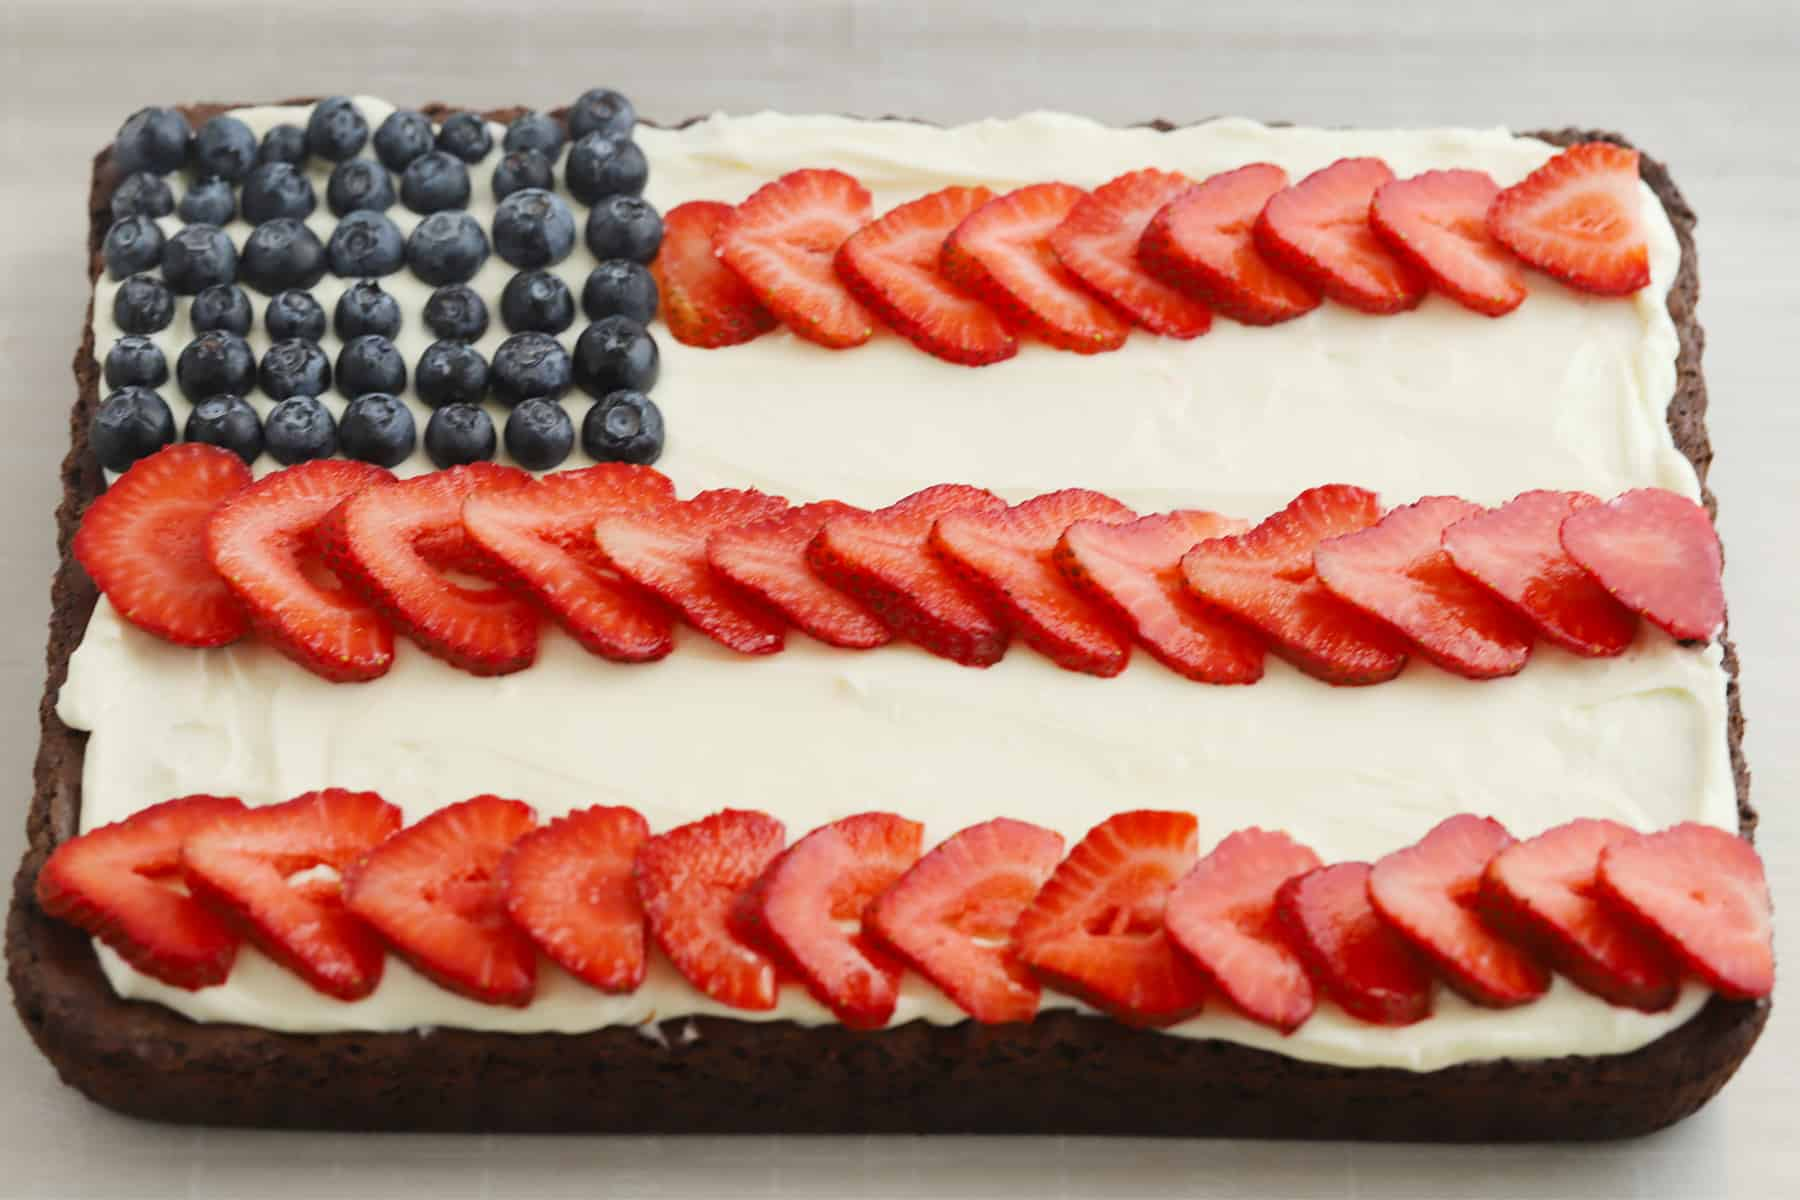 A large brownie topped with blueberries and strawberries and decorated to look like the American Flag.